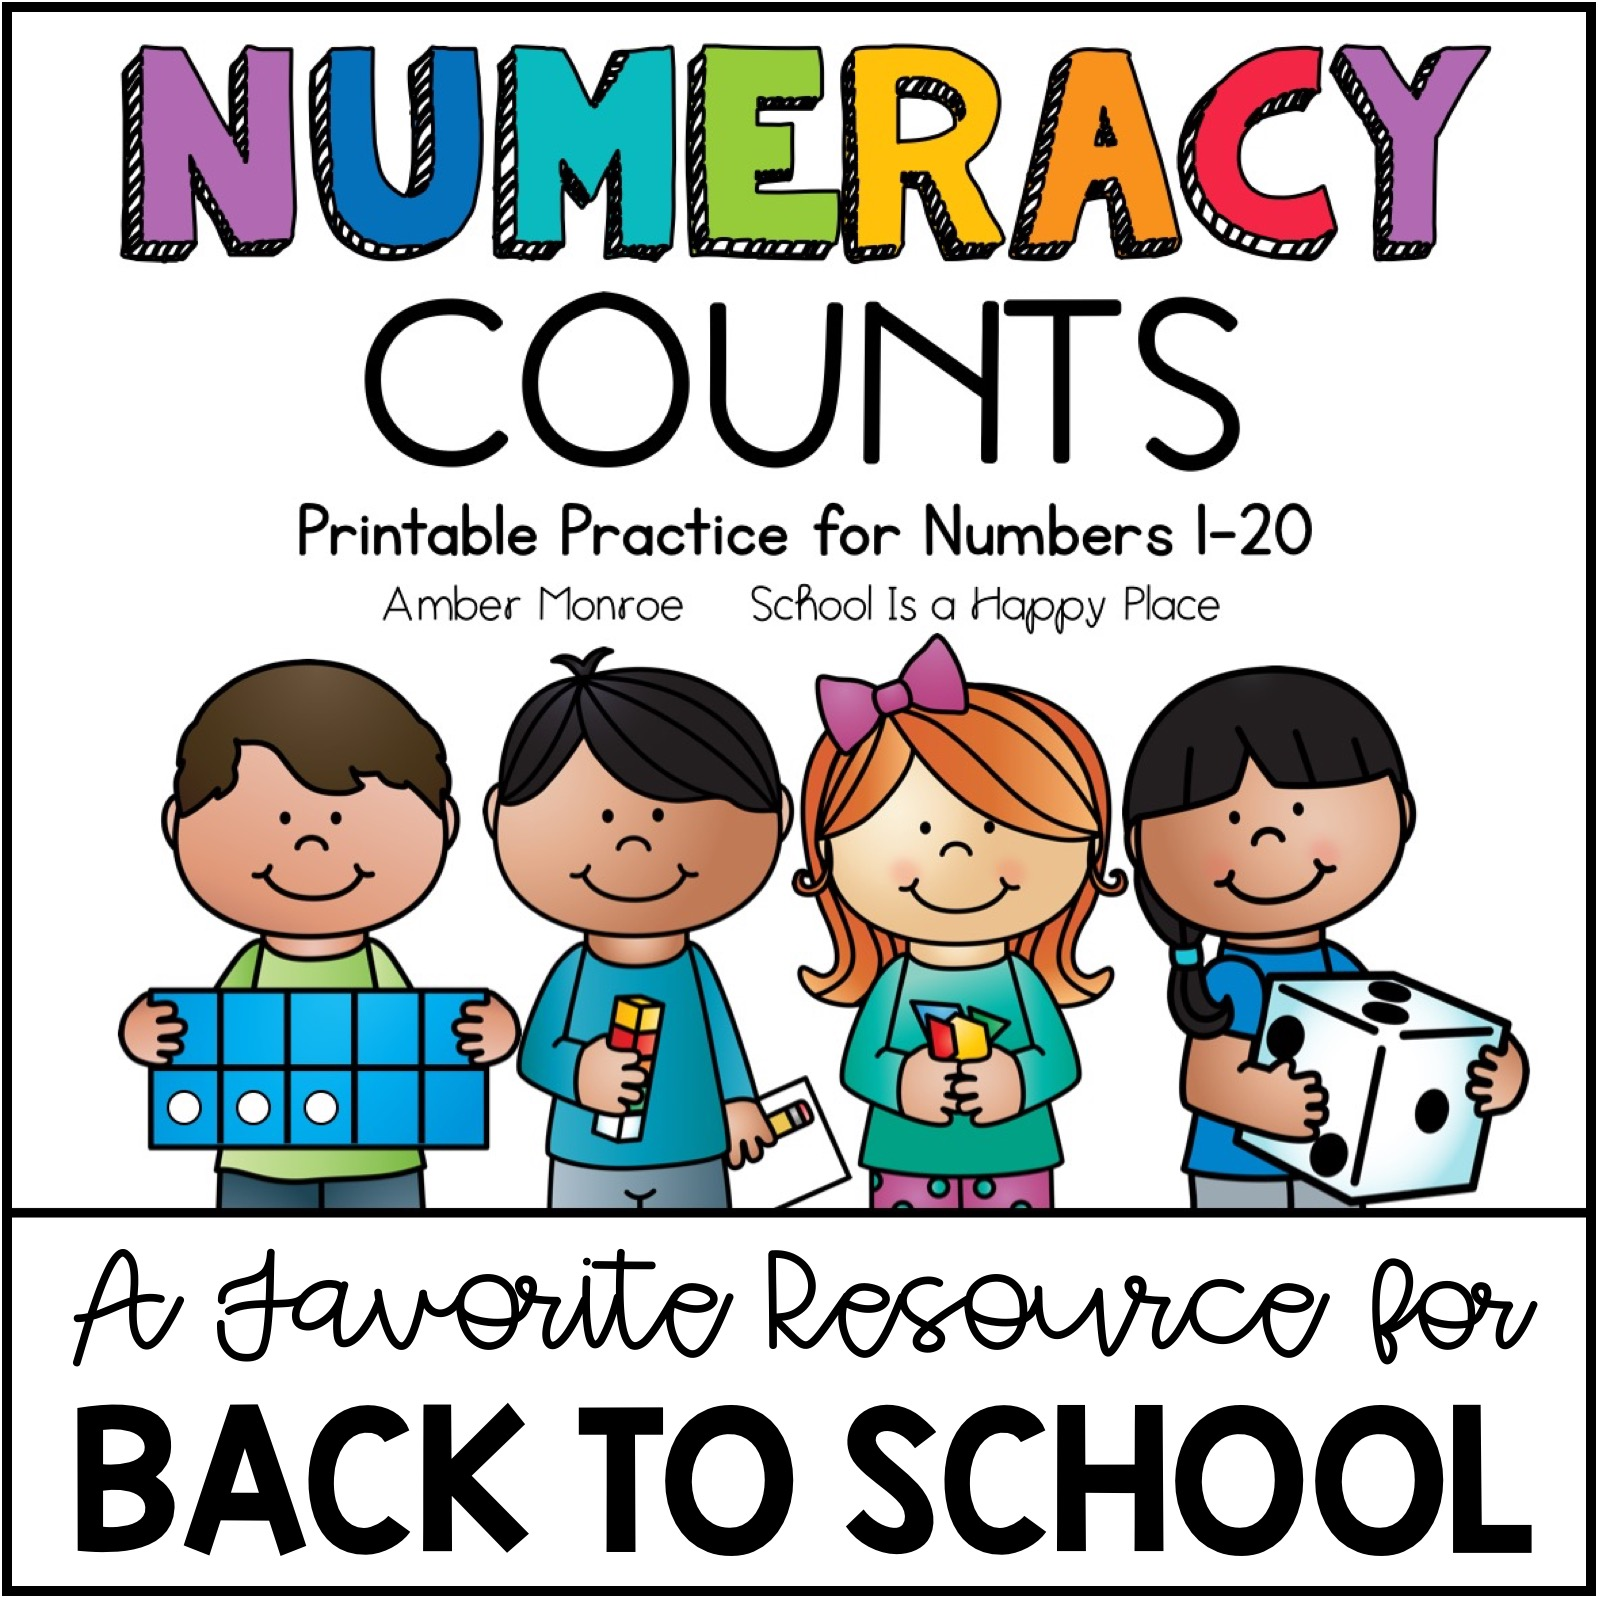 Printable Practice for Numbers 1-20